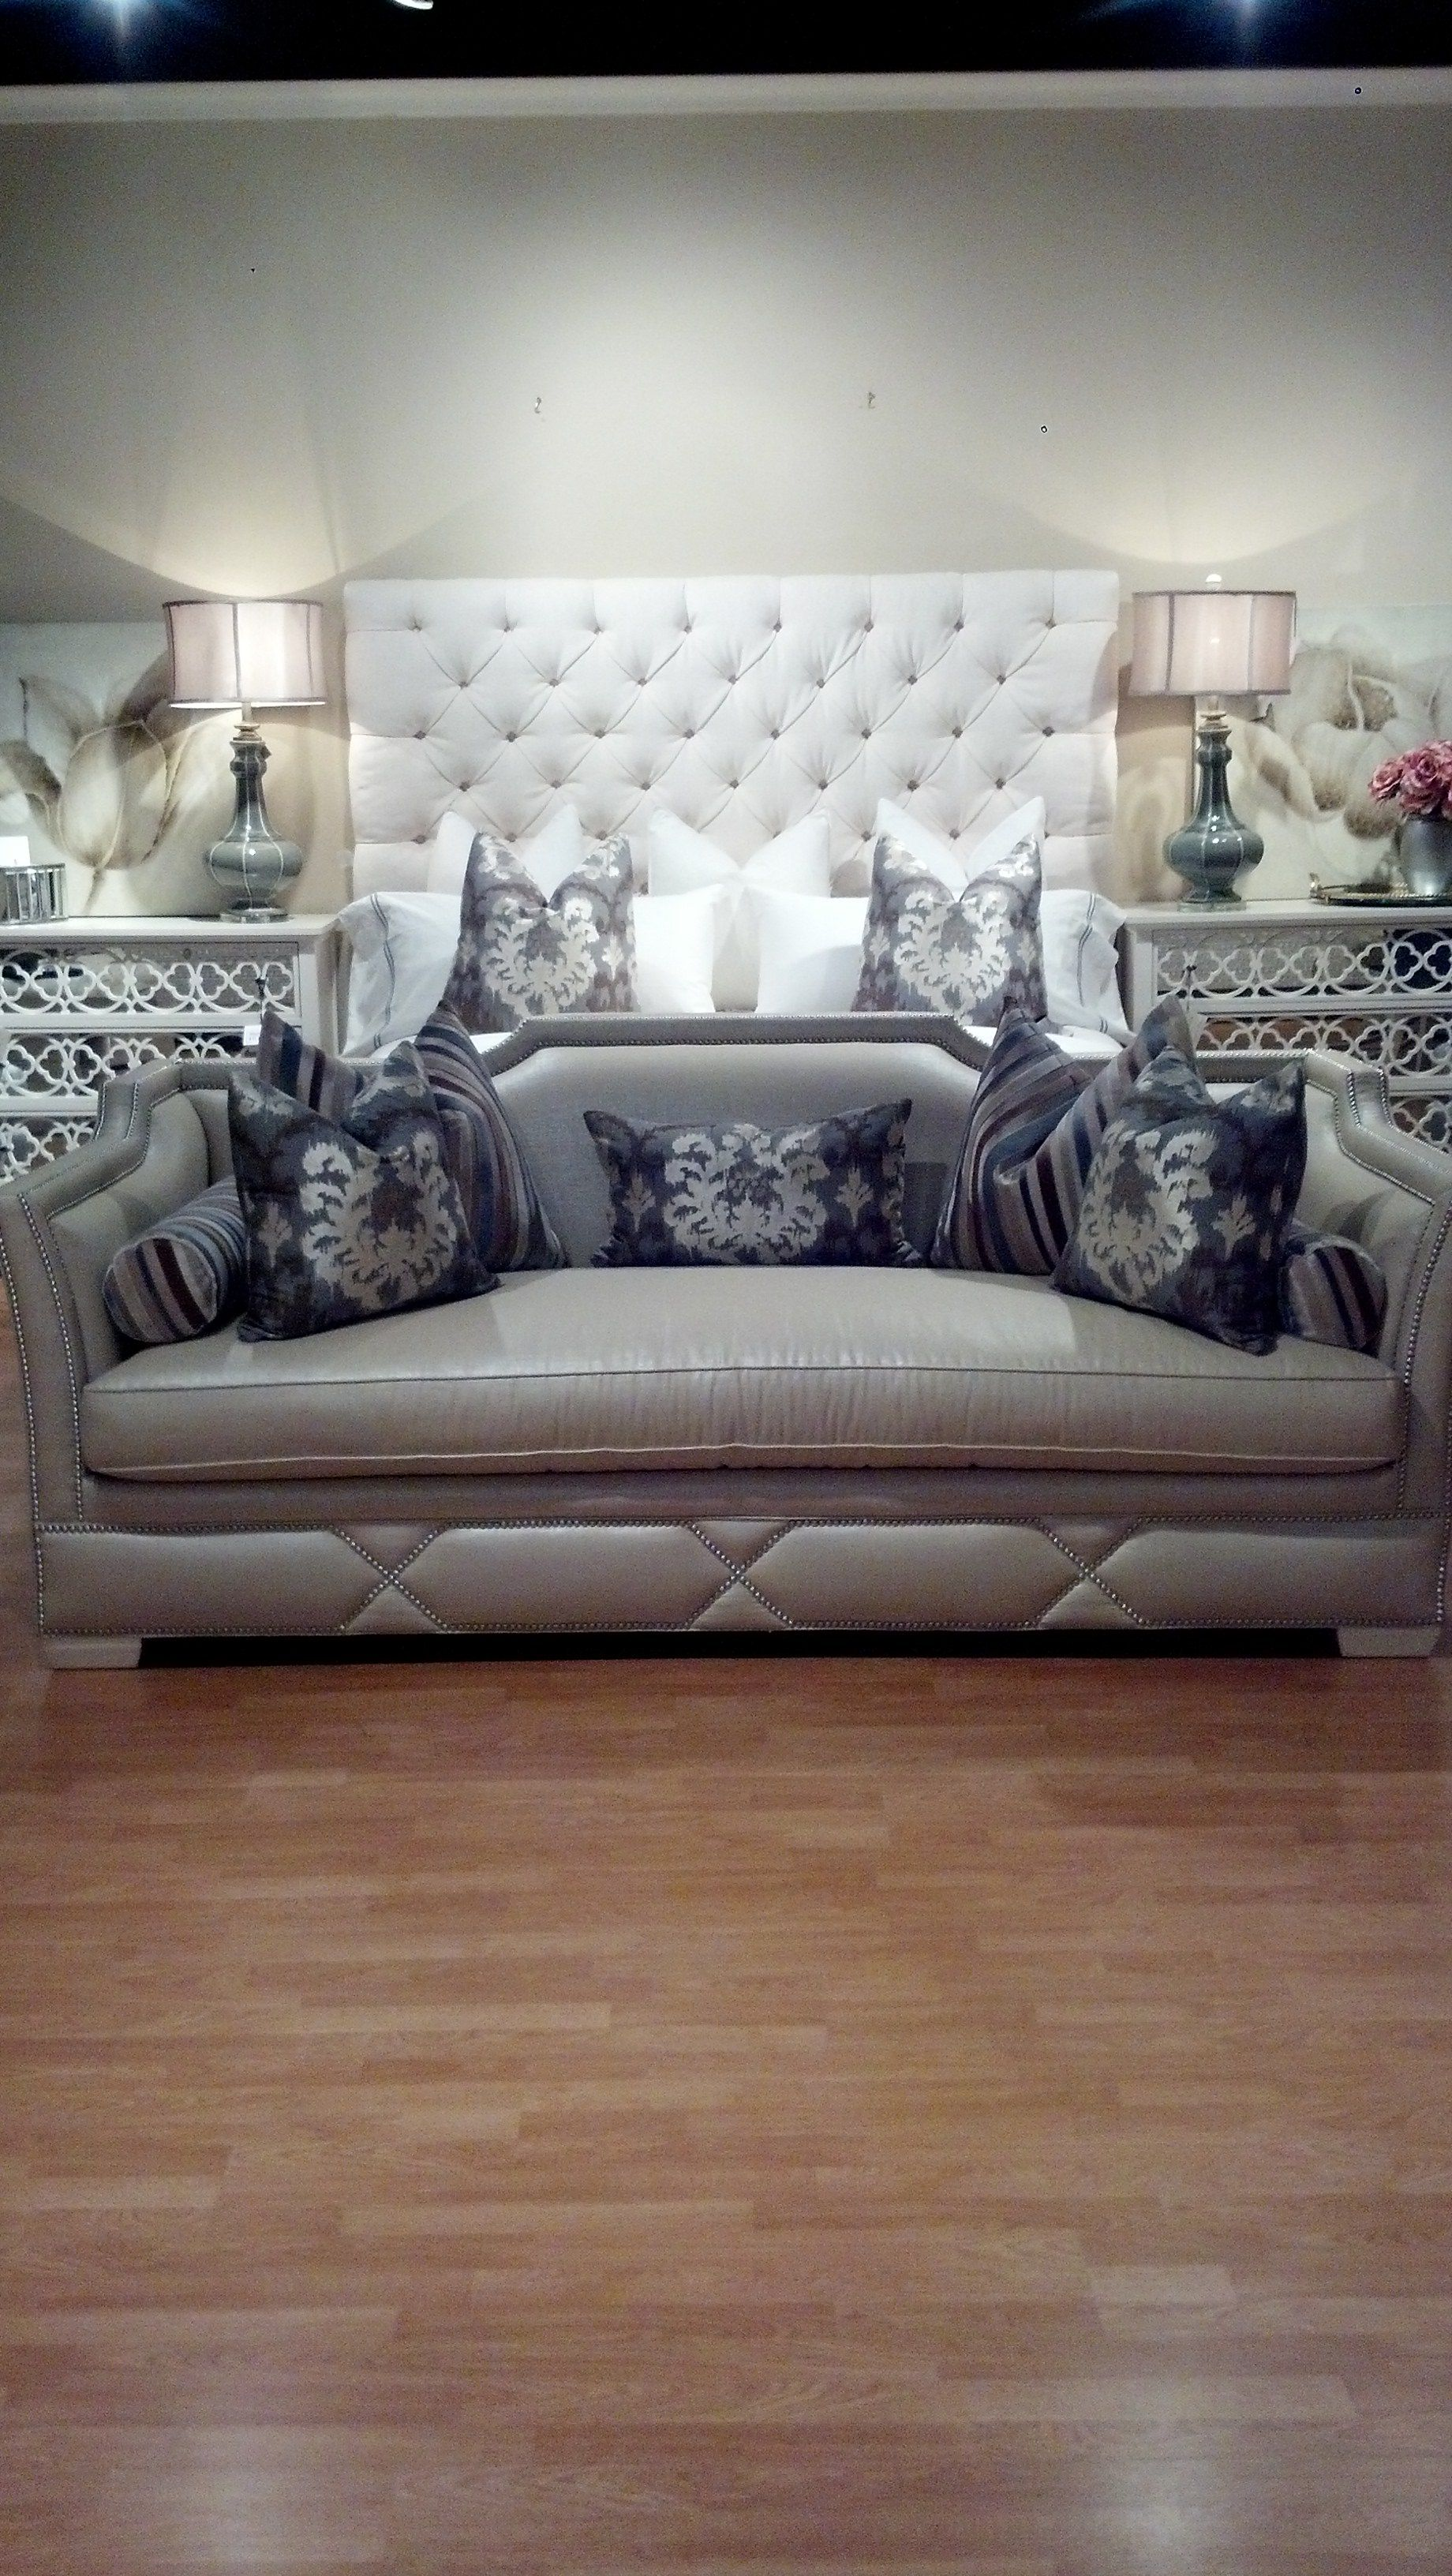 Bernhardt Porter Bed and Hickory White Waslin Sofa and